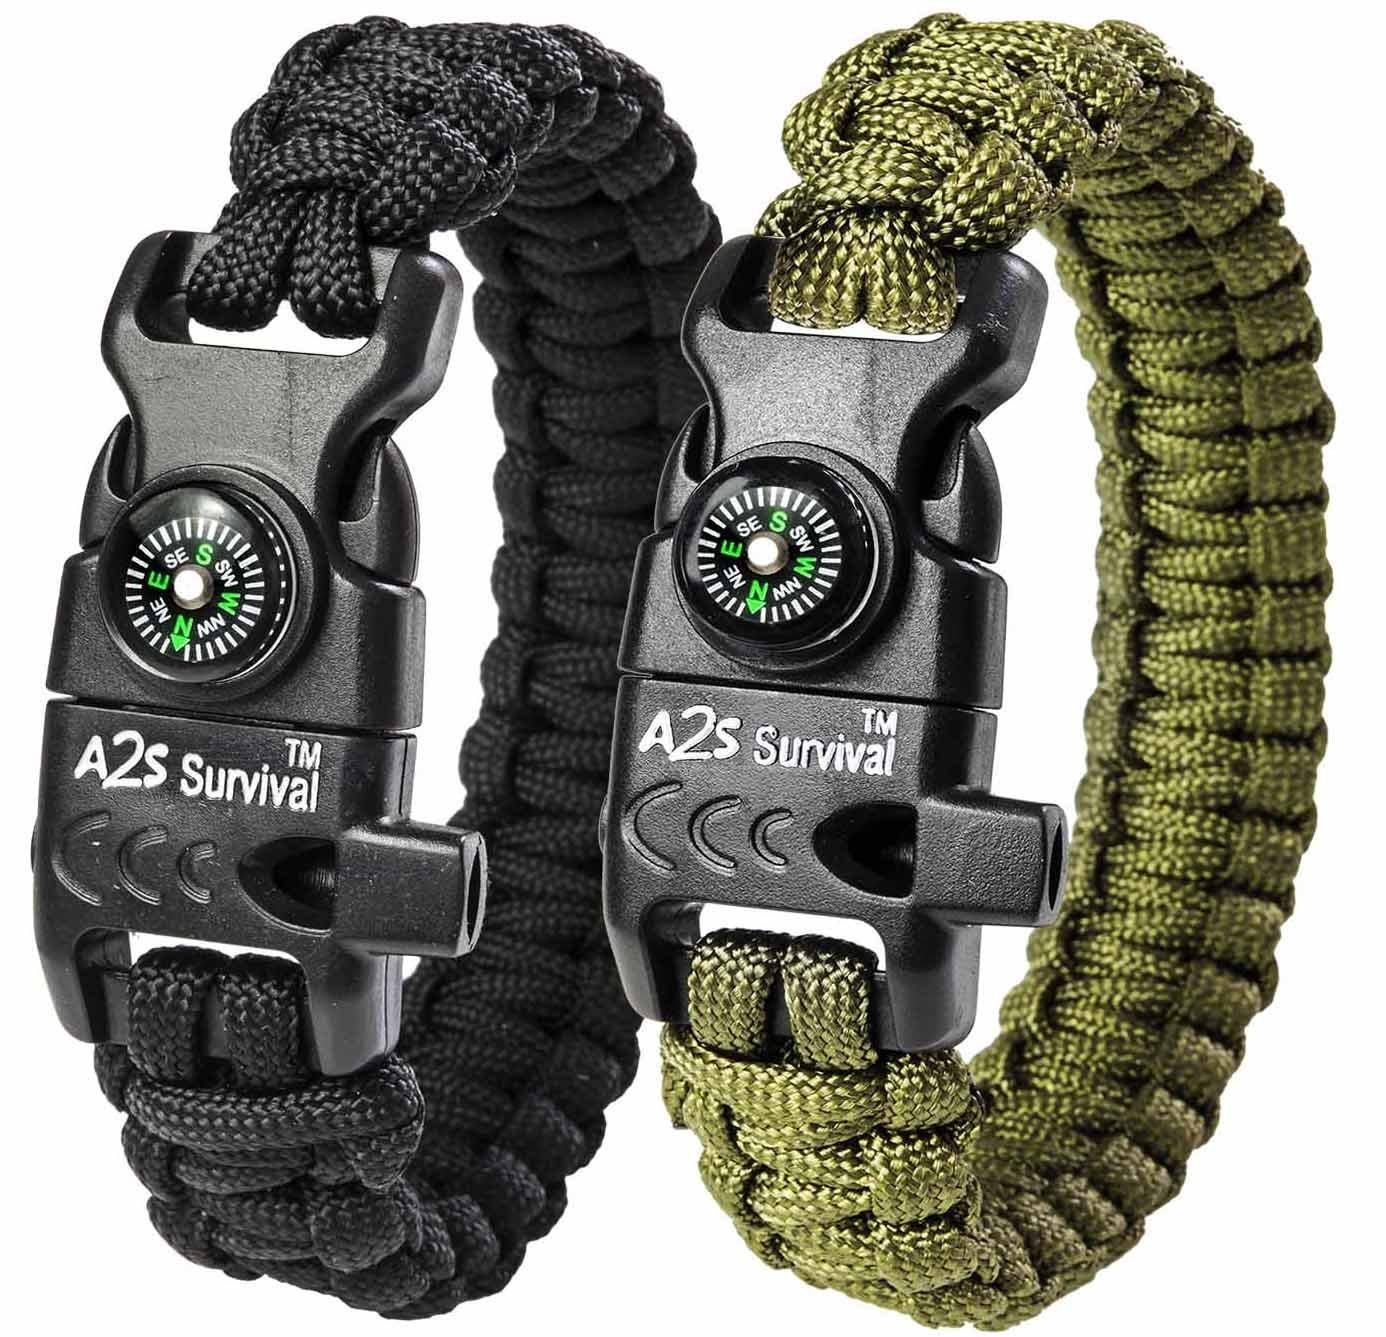 A2S Paracord Bracelet K2 Peak Emergency